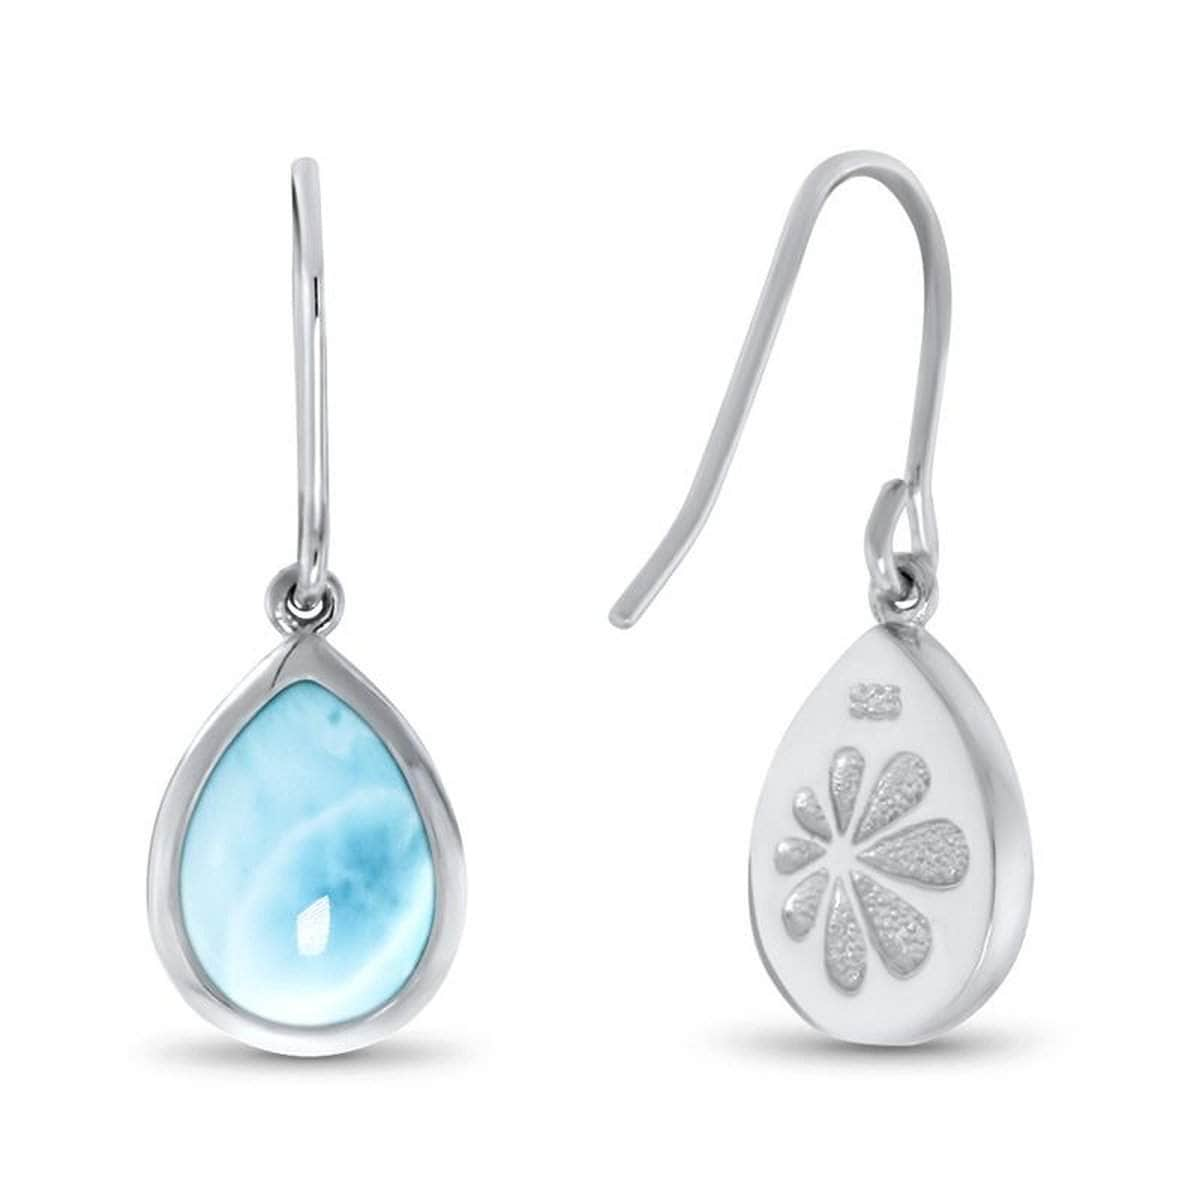 Pear Dangle Earrings - Ebasi08-00-Marahlago Larimar-Renee Taylor Gallery